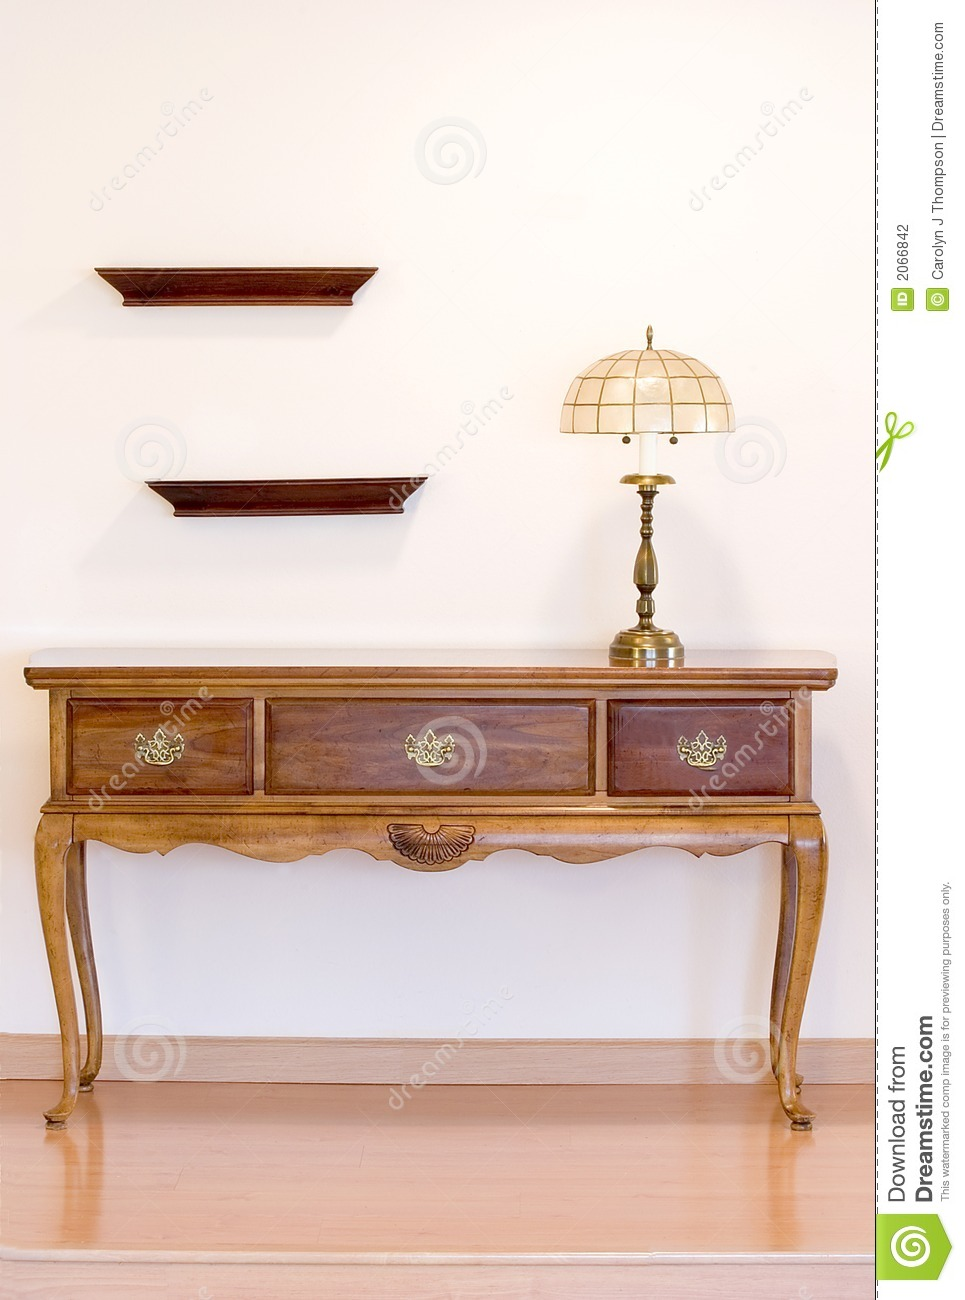 Hunt table with lamp stock photo image of walnut flooring 2066842 hunt table with lamp aloadofball Choice Image